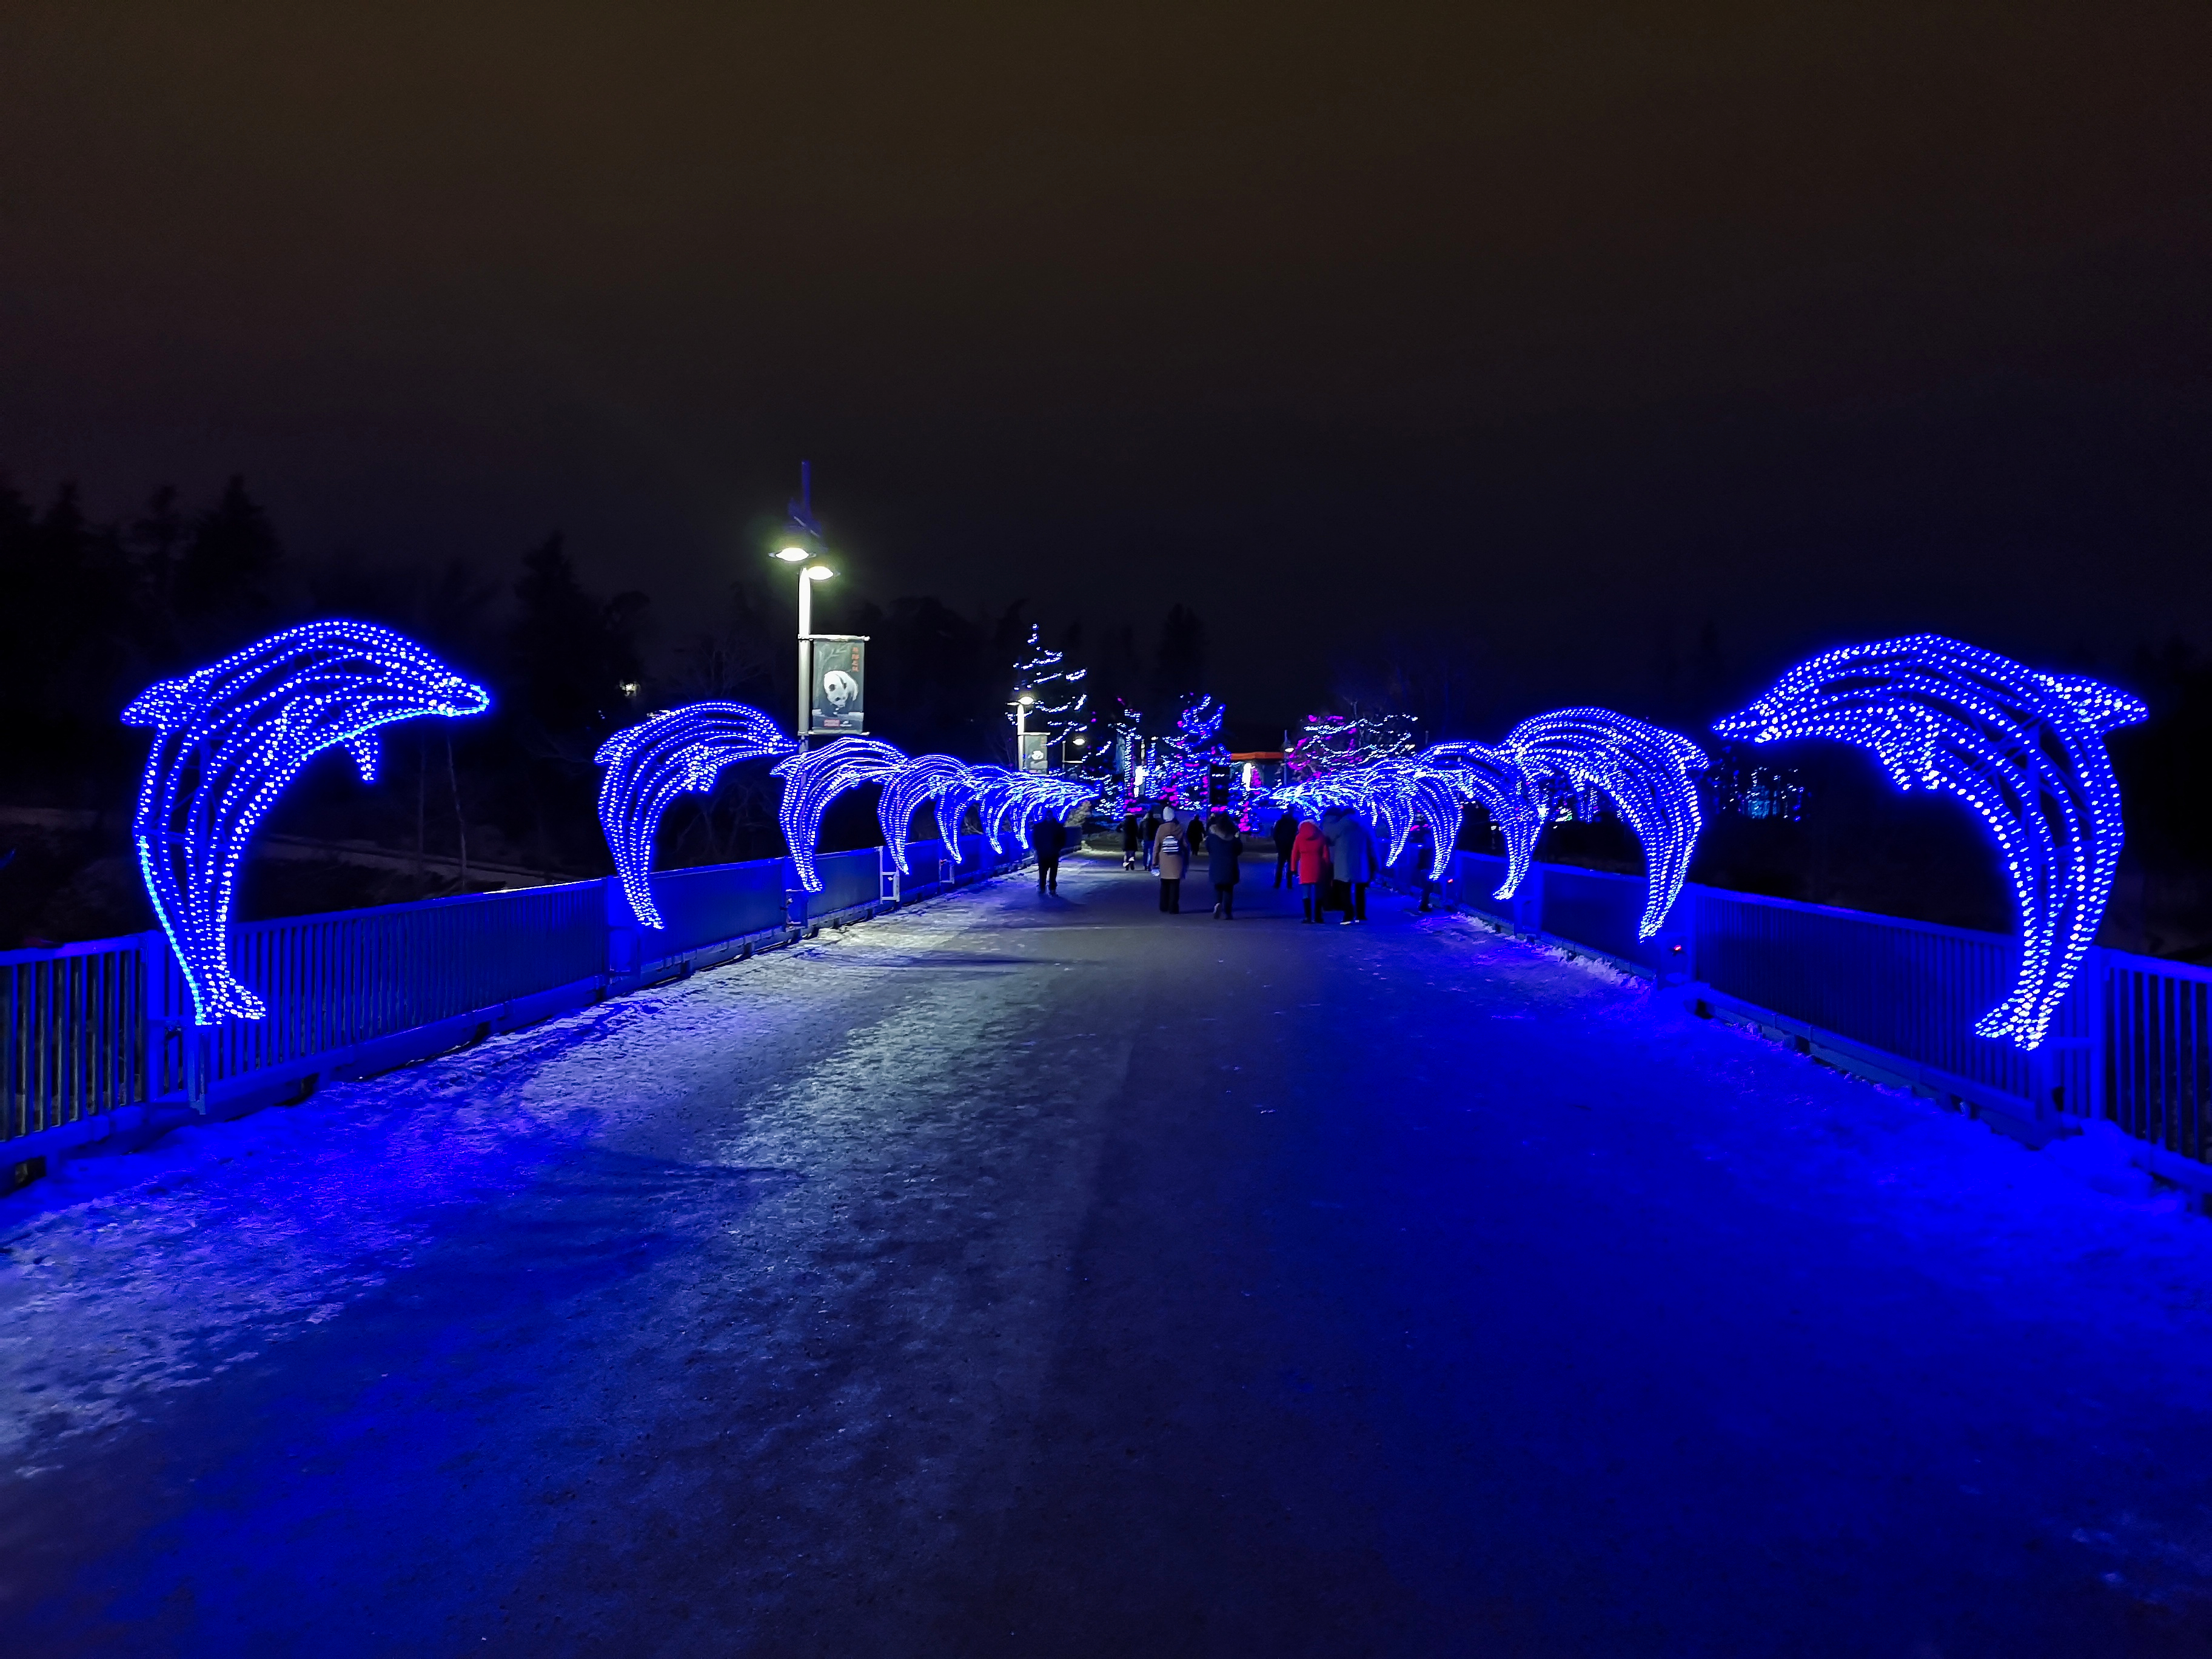 Dolphins at Zoolights in Calgary